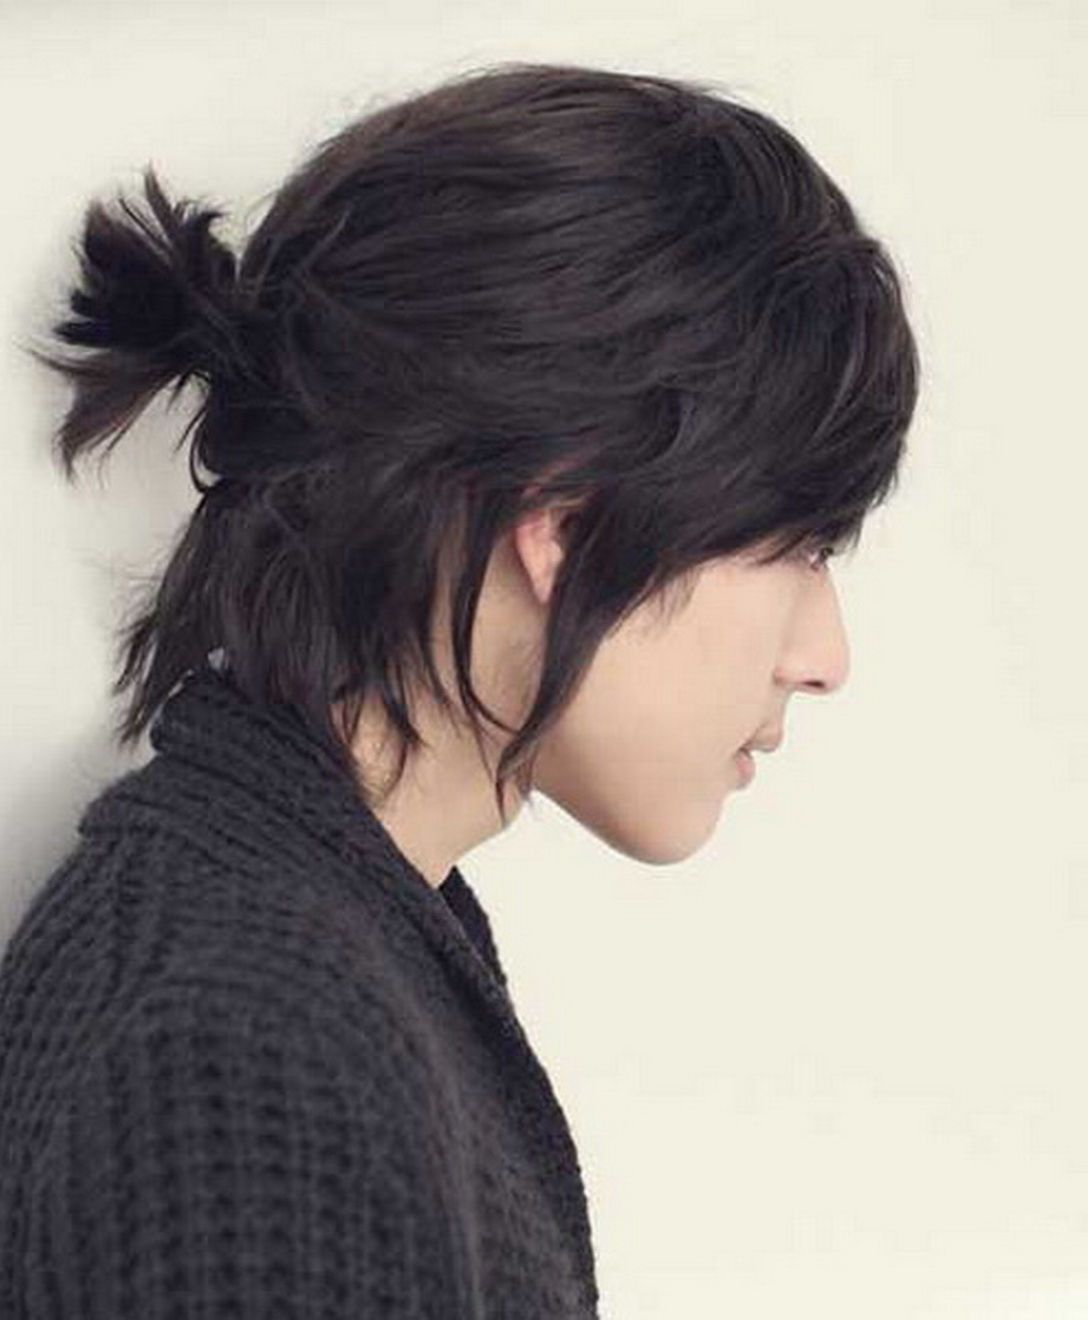 Superb Asian Hairstyles Asian Men And Hairstyles On Pinterest Short Hairstyles For Black Women Fulllsitofus